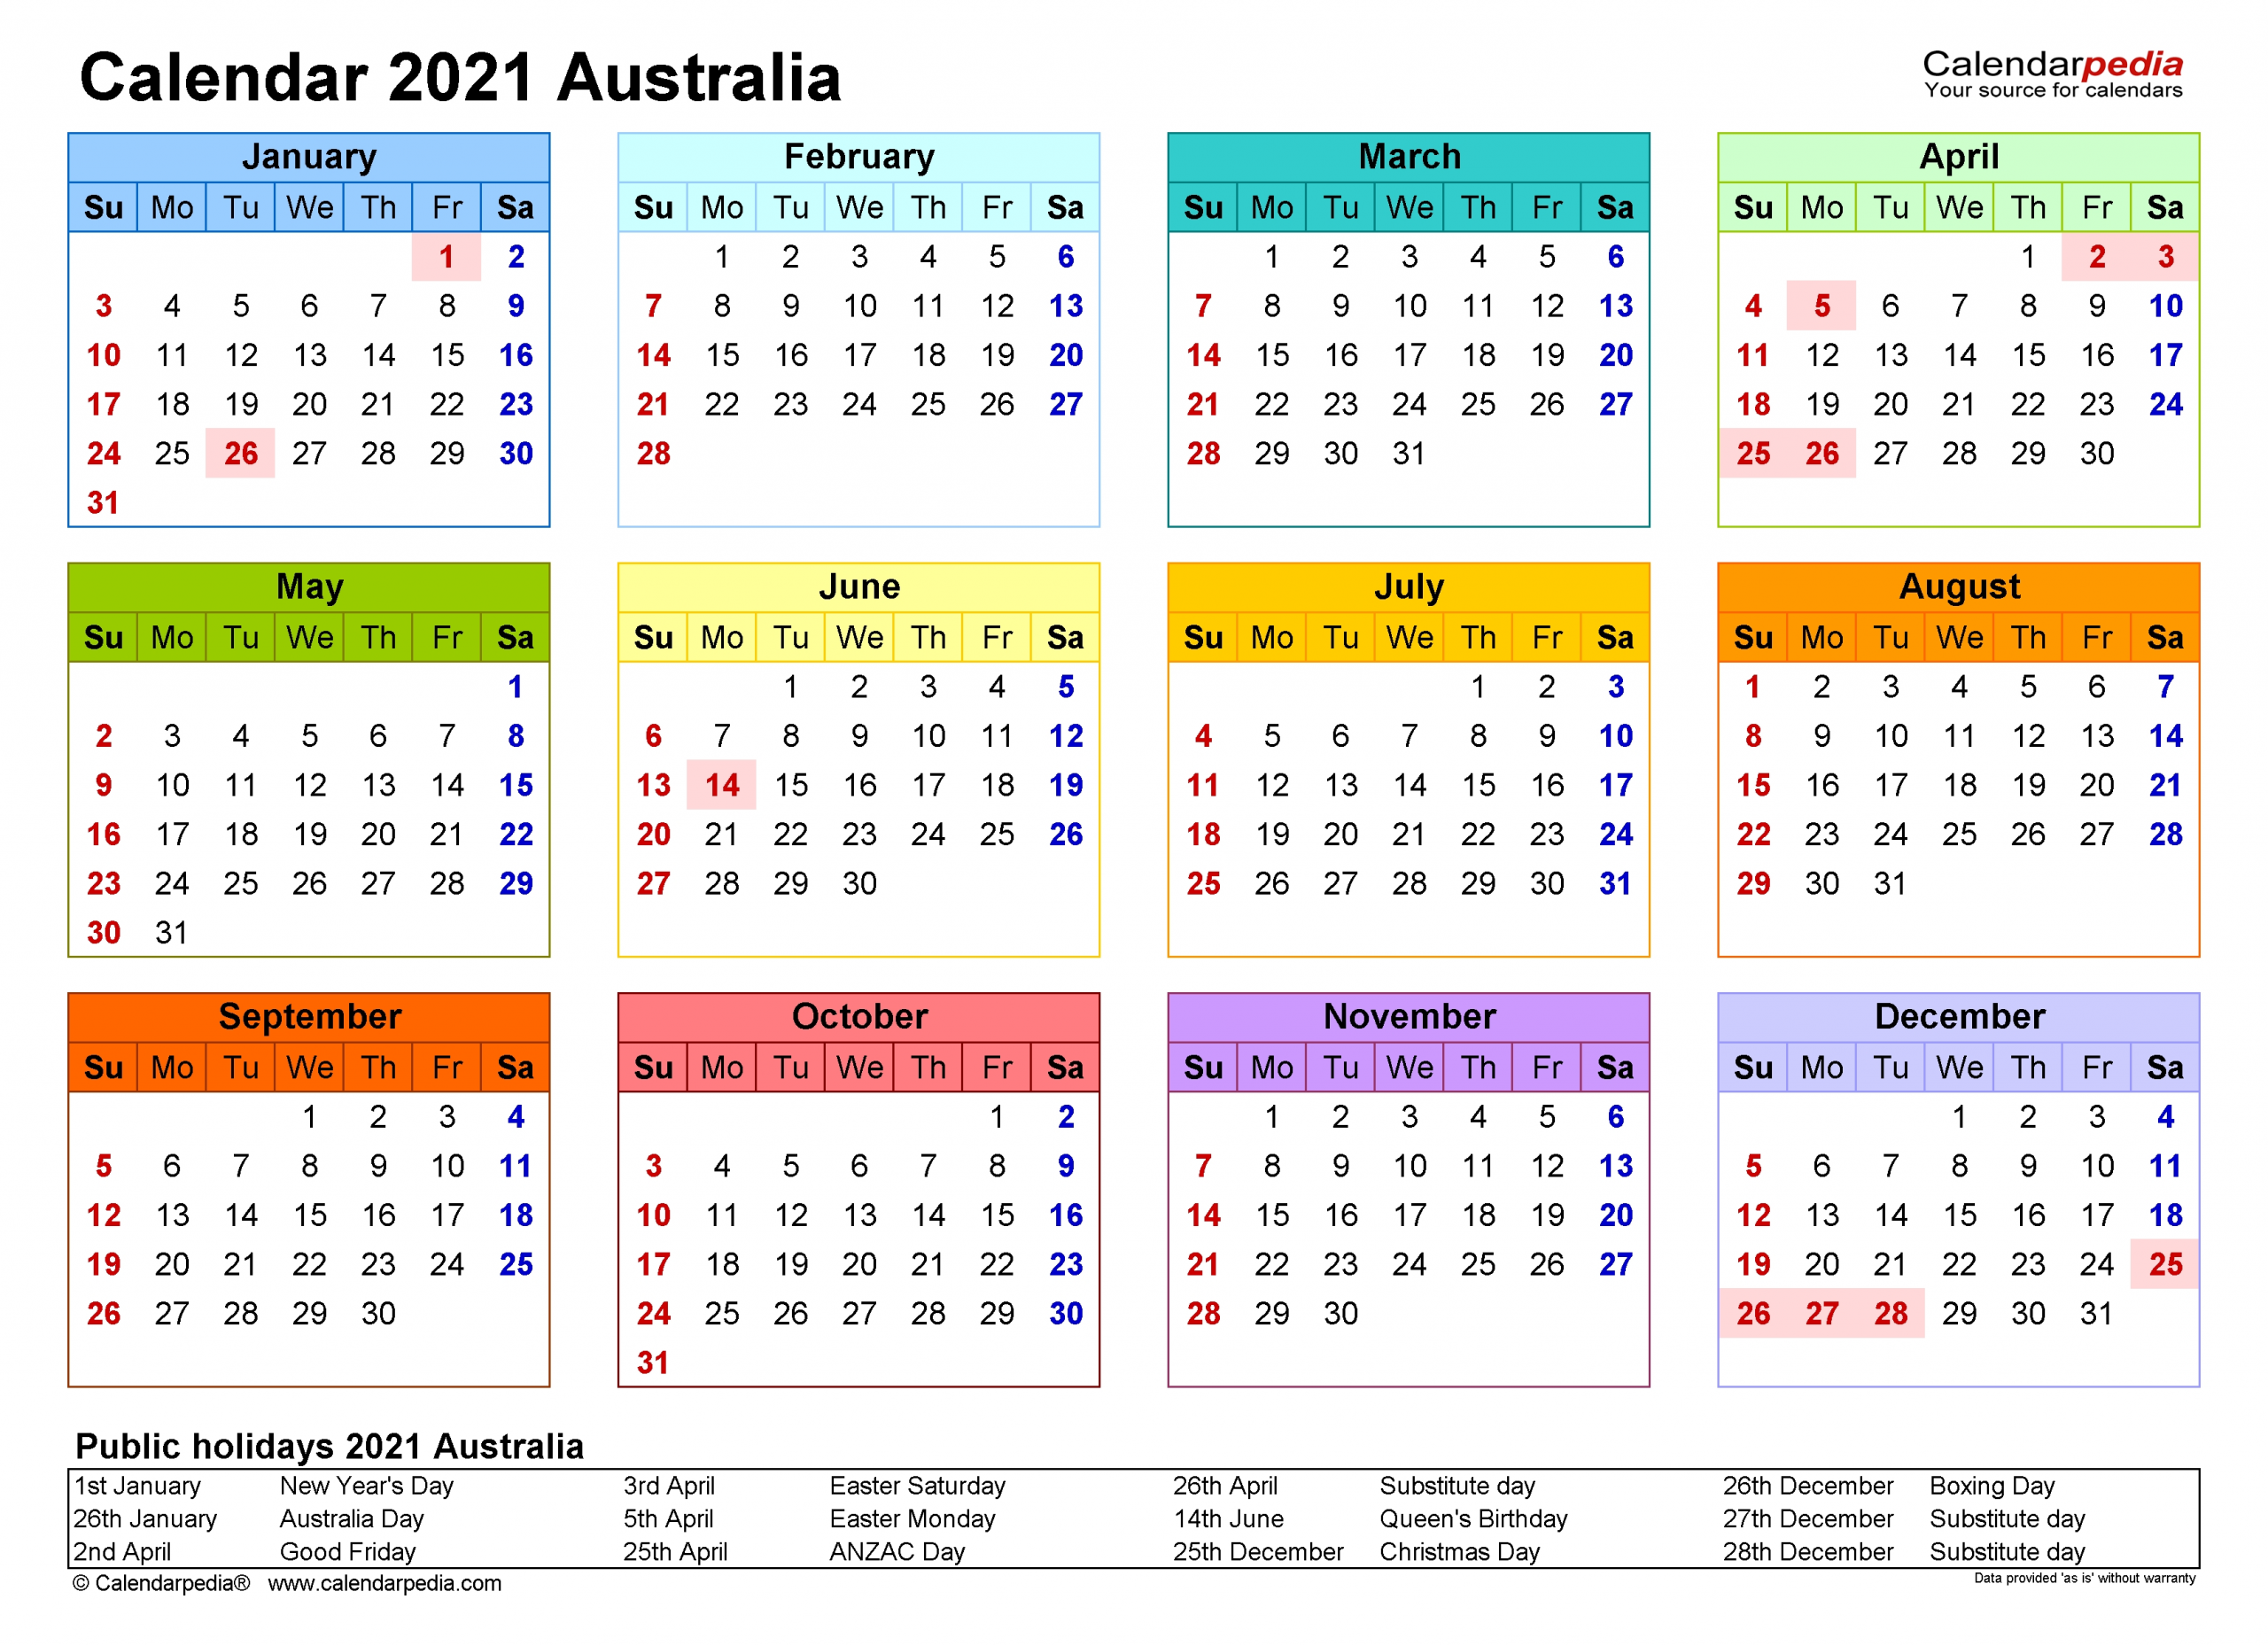 Australia Calendar 2021 - Free Printable Word Templates  Financial Year 2021 19 Australia